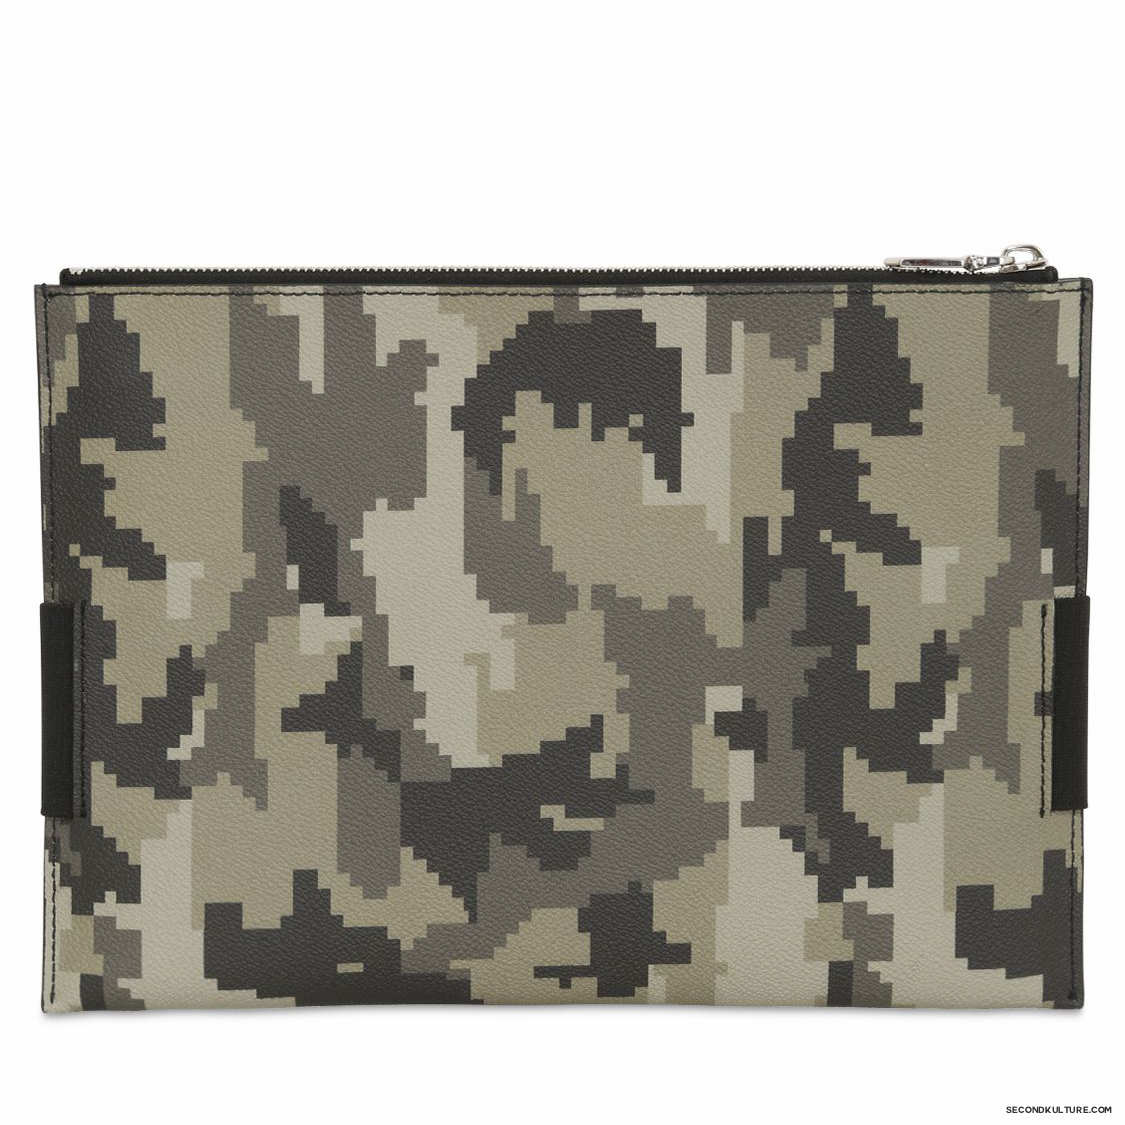 Givenchy-Digital-Camo-Elastic-Band-Zipped-Canvas-Leather-Pouch-Fall-Winter-2015-2